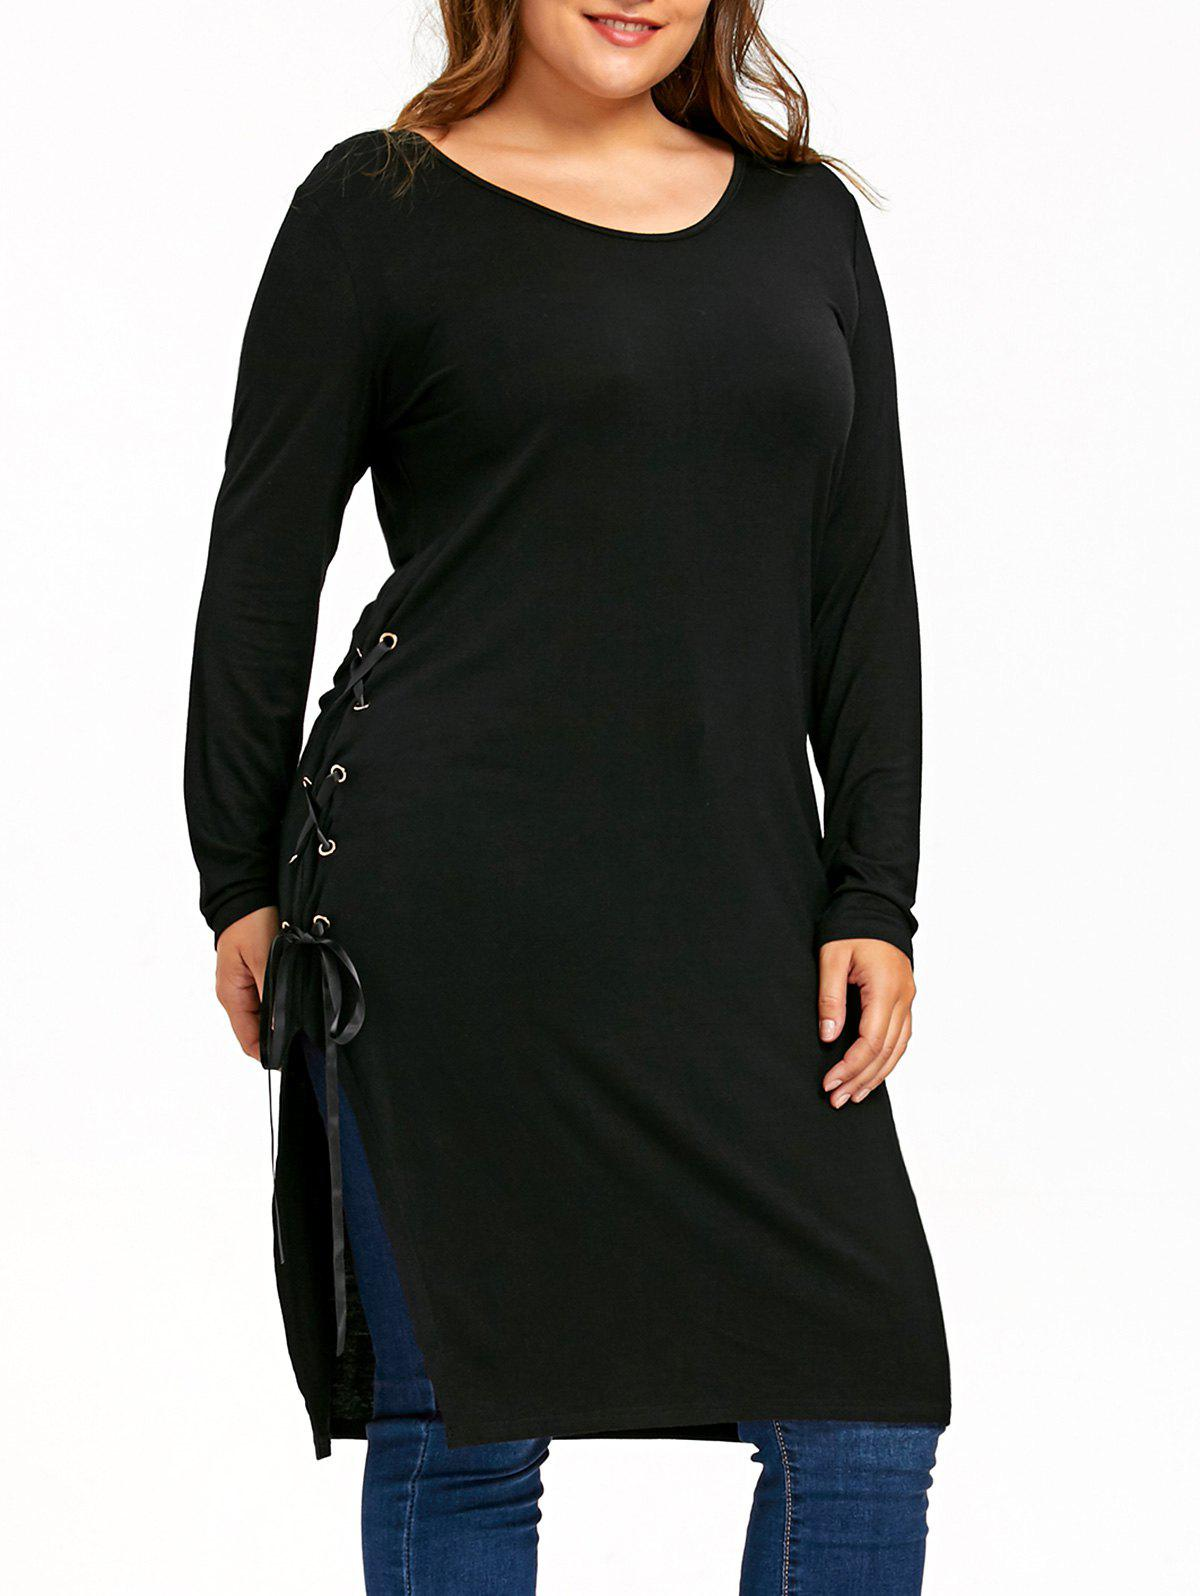 Plus Size Side Slit Lace Up Longline TopWOMEN<br><br>Size: 3XL; Color: BLACK; Material: Polyester,Spandex; Shirt Length: Long; Sleeve Length: Full; Collar: Round Neck; Style: Casual; Season: Fall,Spring; Pattern Type: Solid; Weight: 0.3500kg; Package Contents: 1 x Top;